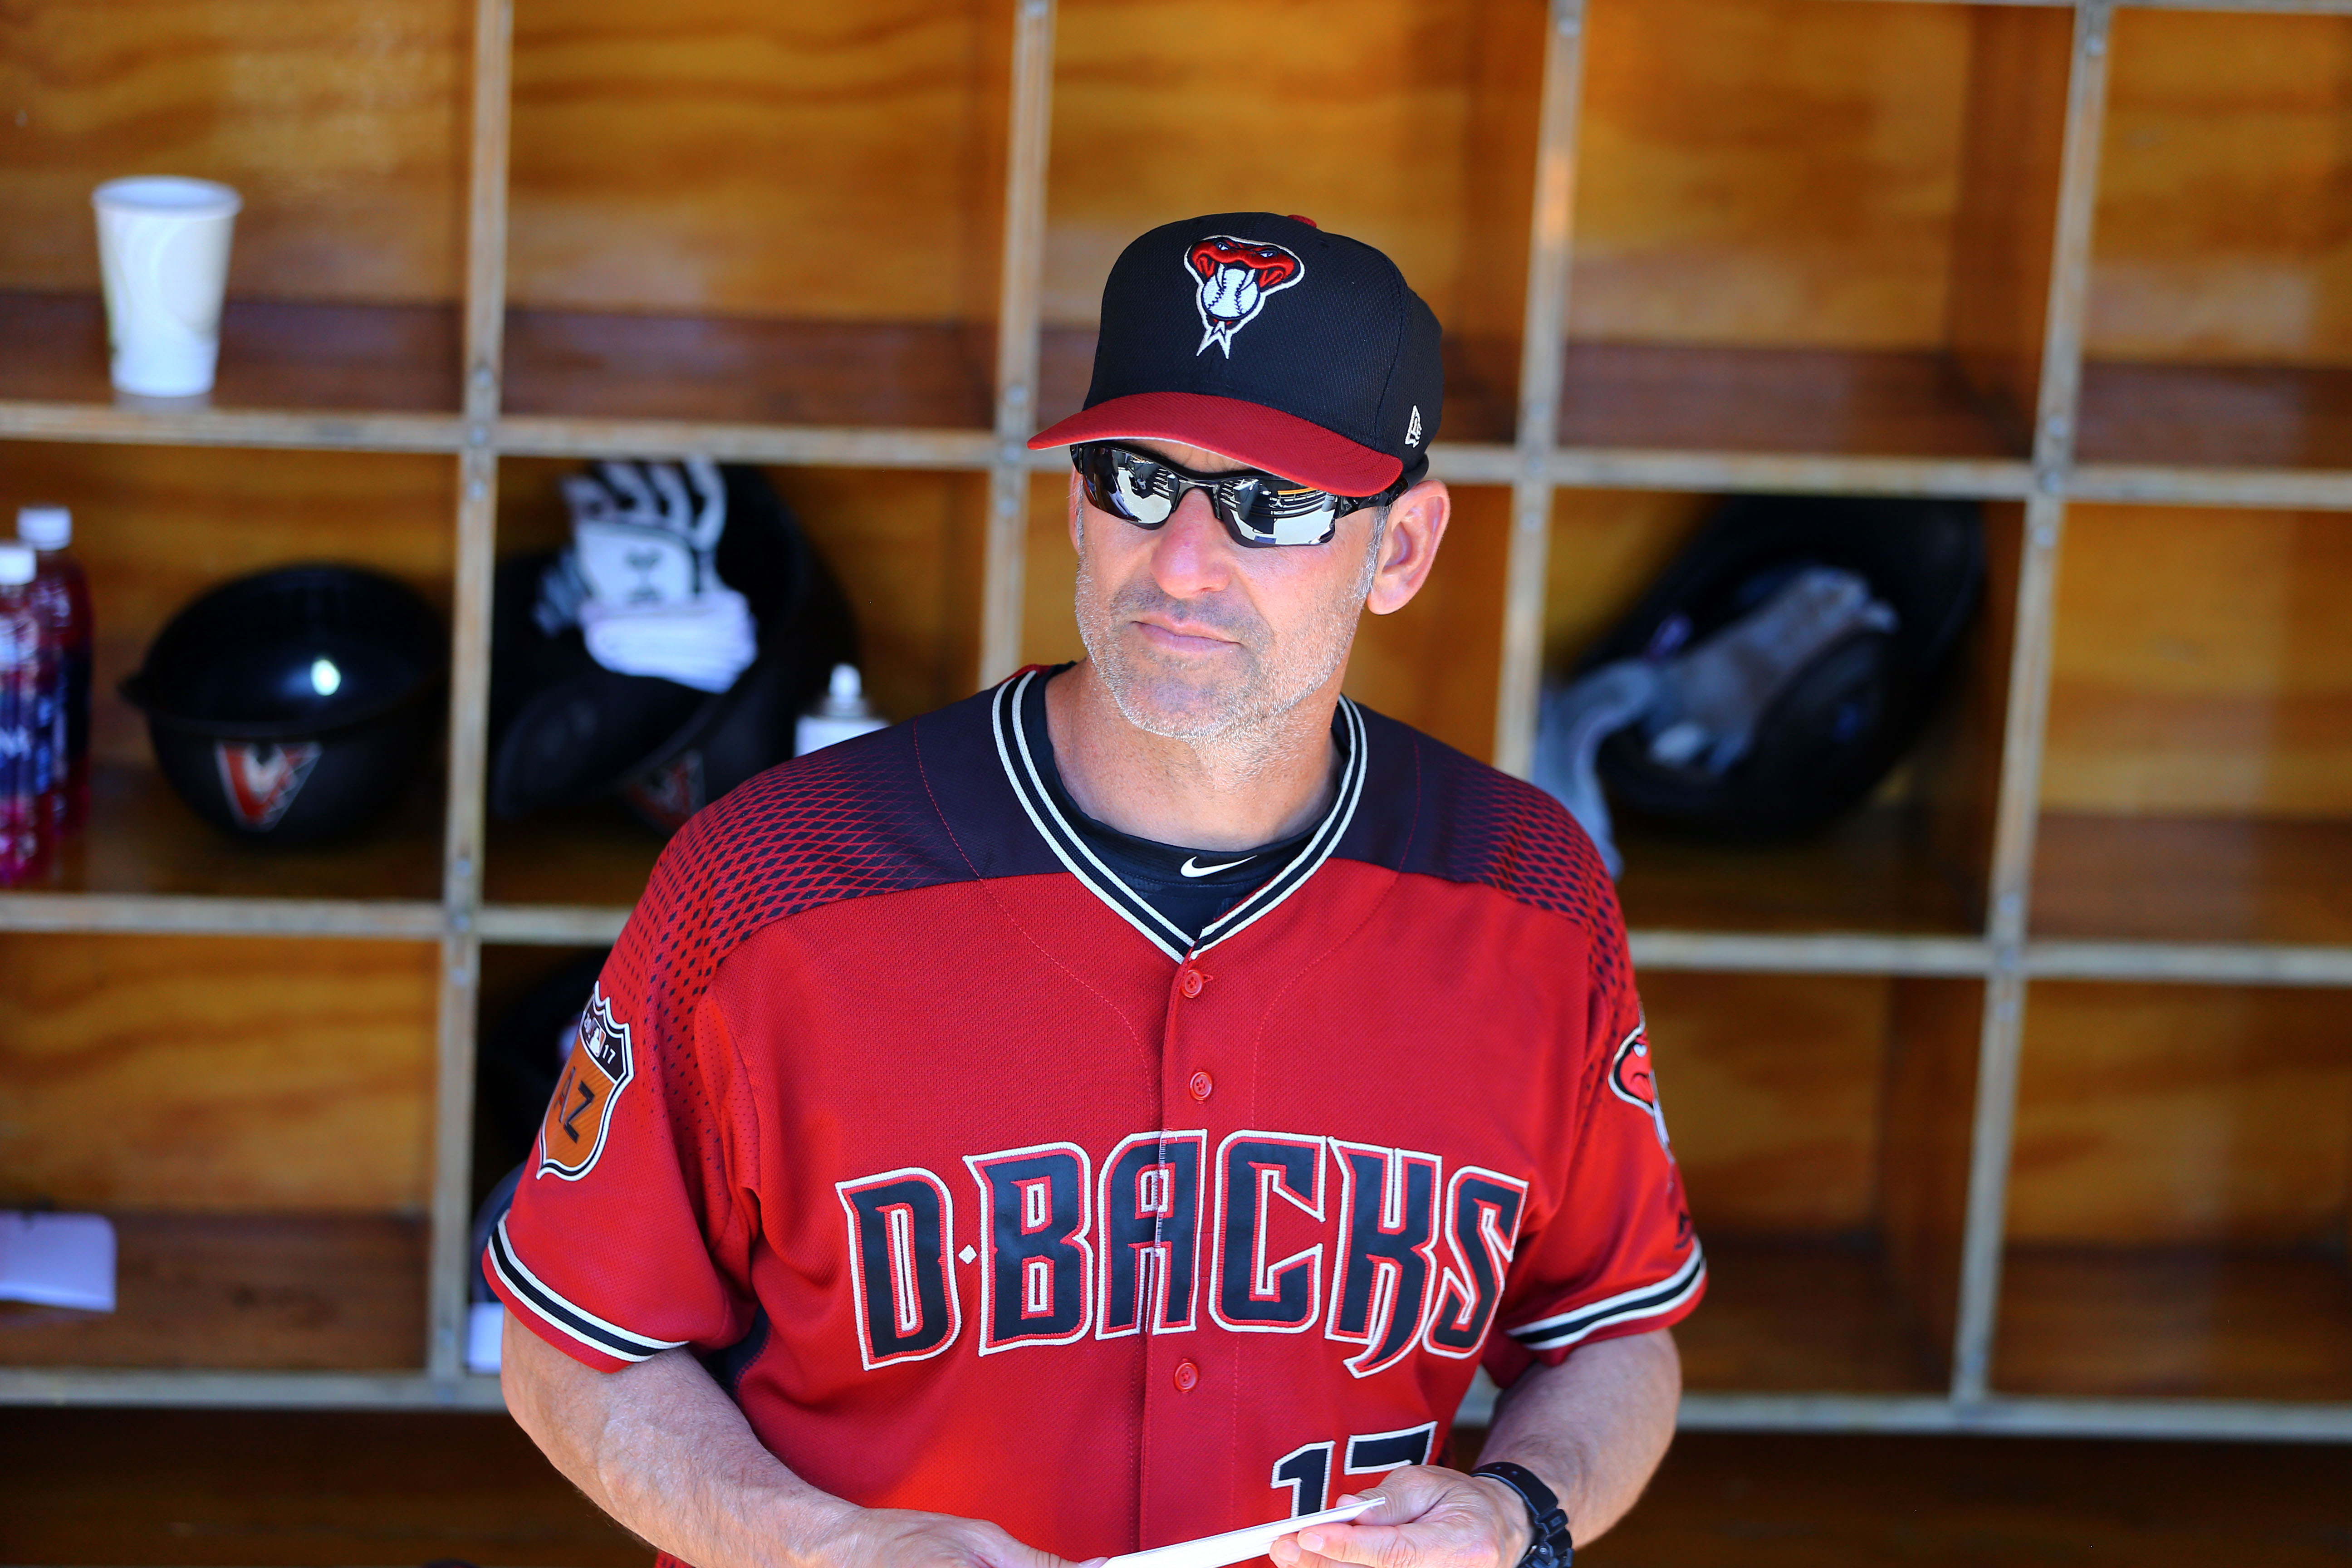 Torey Lovullo gets his first chance as a big-league manager with the Arizona Diamondbacks (Mark J. Rebilas-USA TODAY Sports).